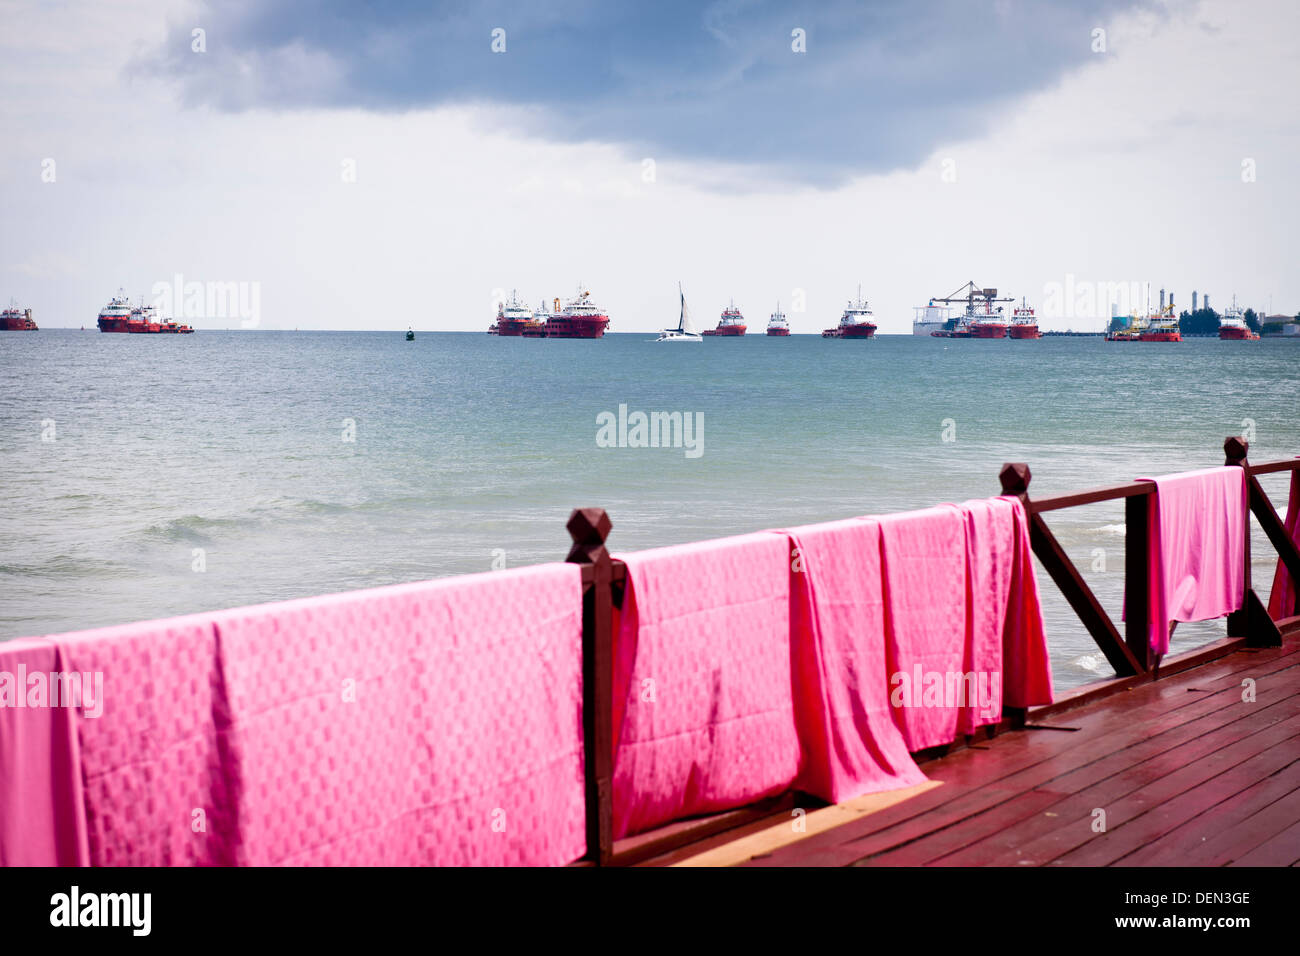 Tablecloths air on the rail of the Yacht Club in Labuan, Malaysia - Stock Image